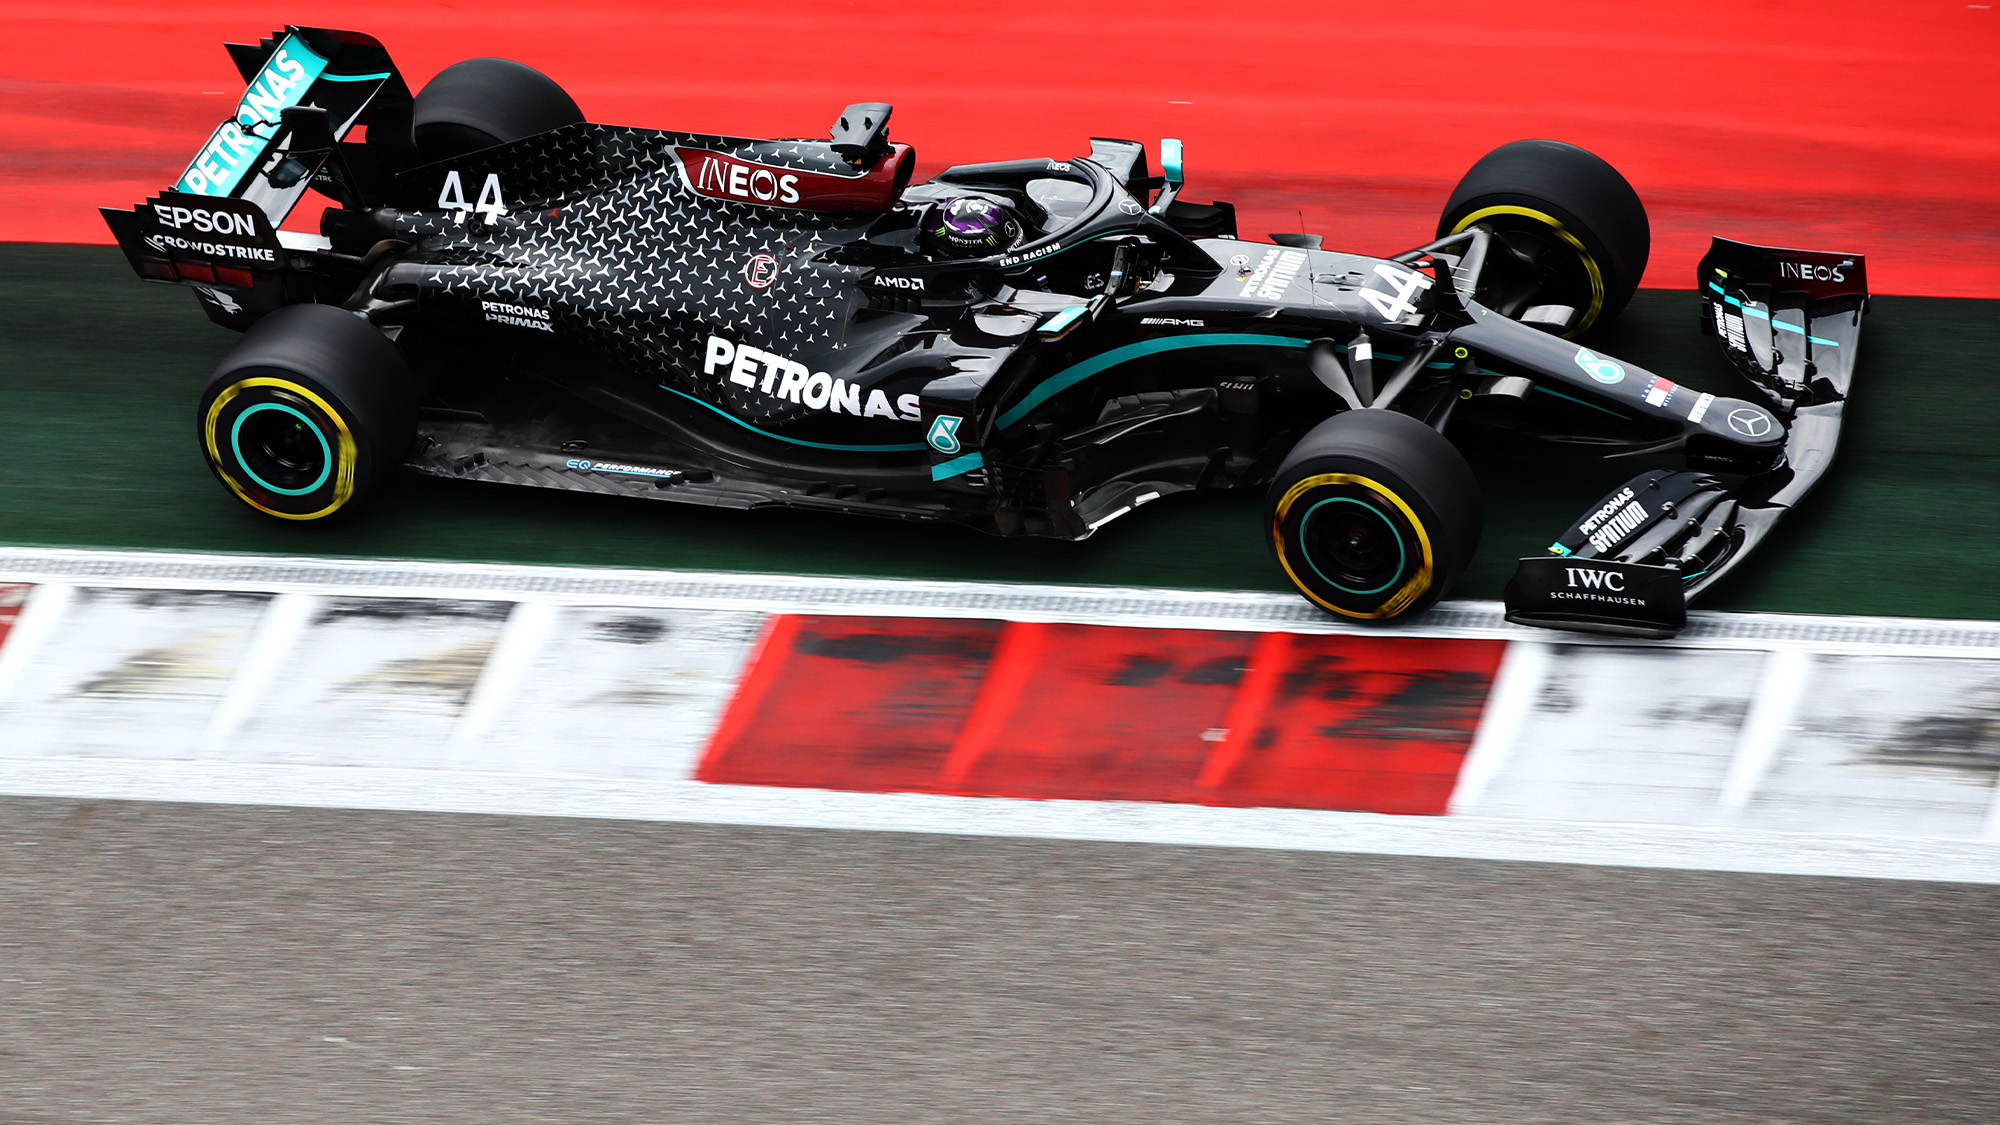 Lewis Hamilton drives out of track limits during qualifying for the 2020 F1 Russian Grand Prix